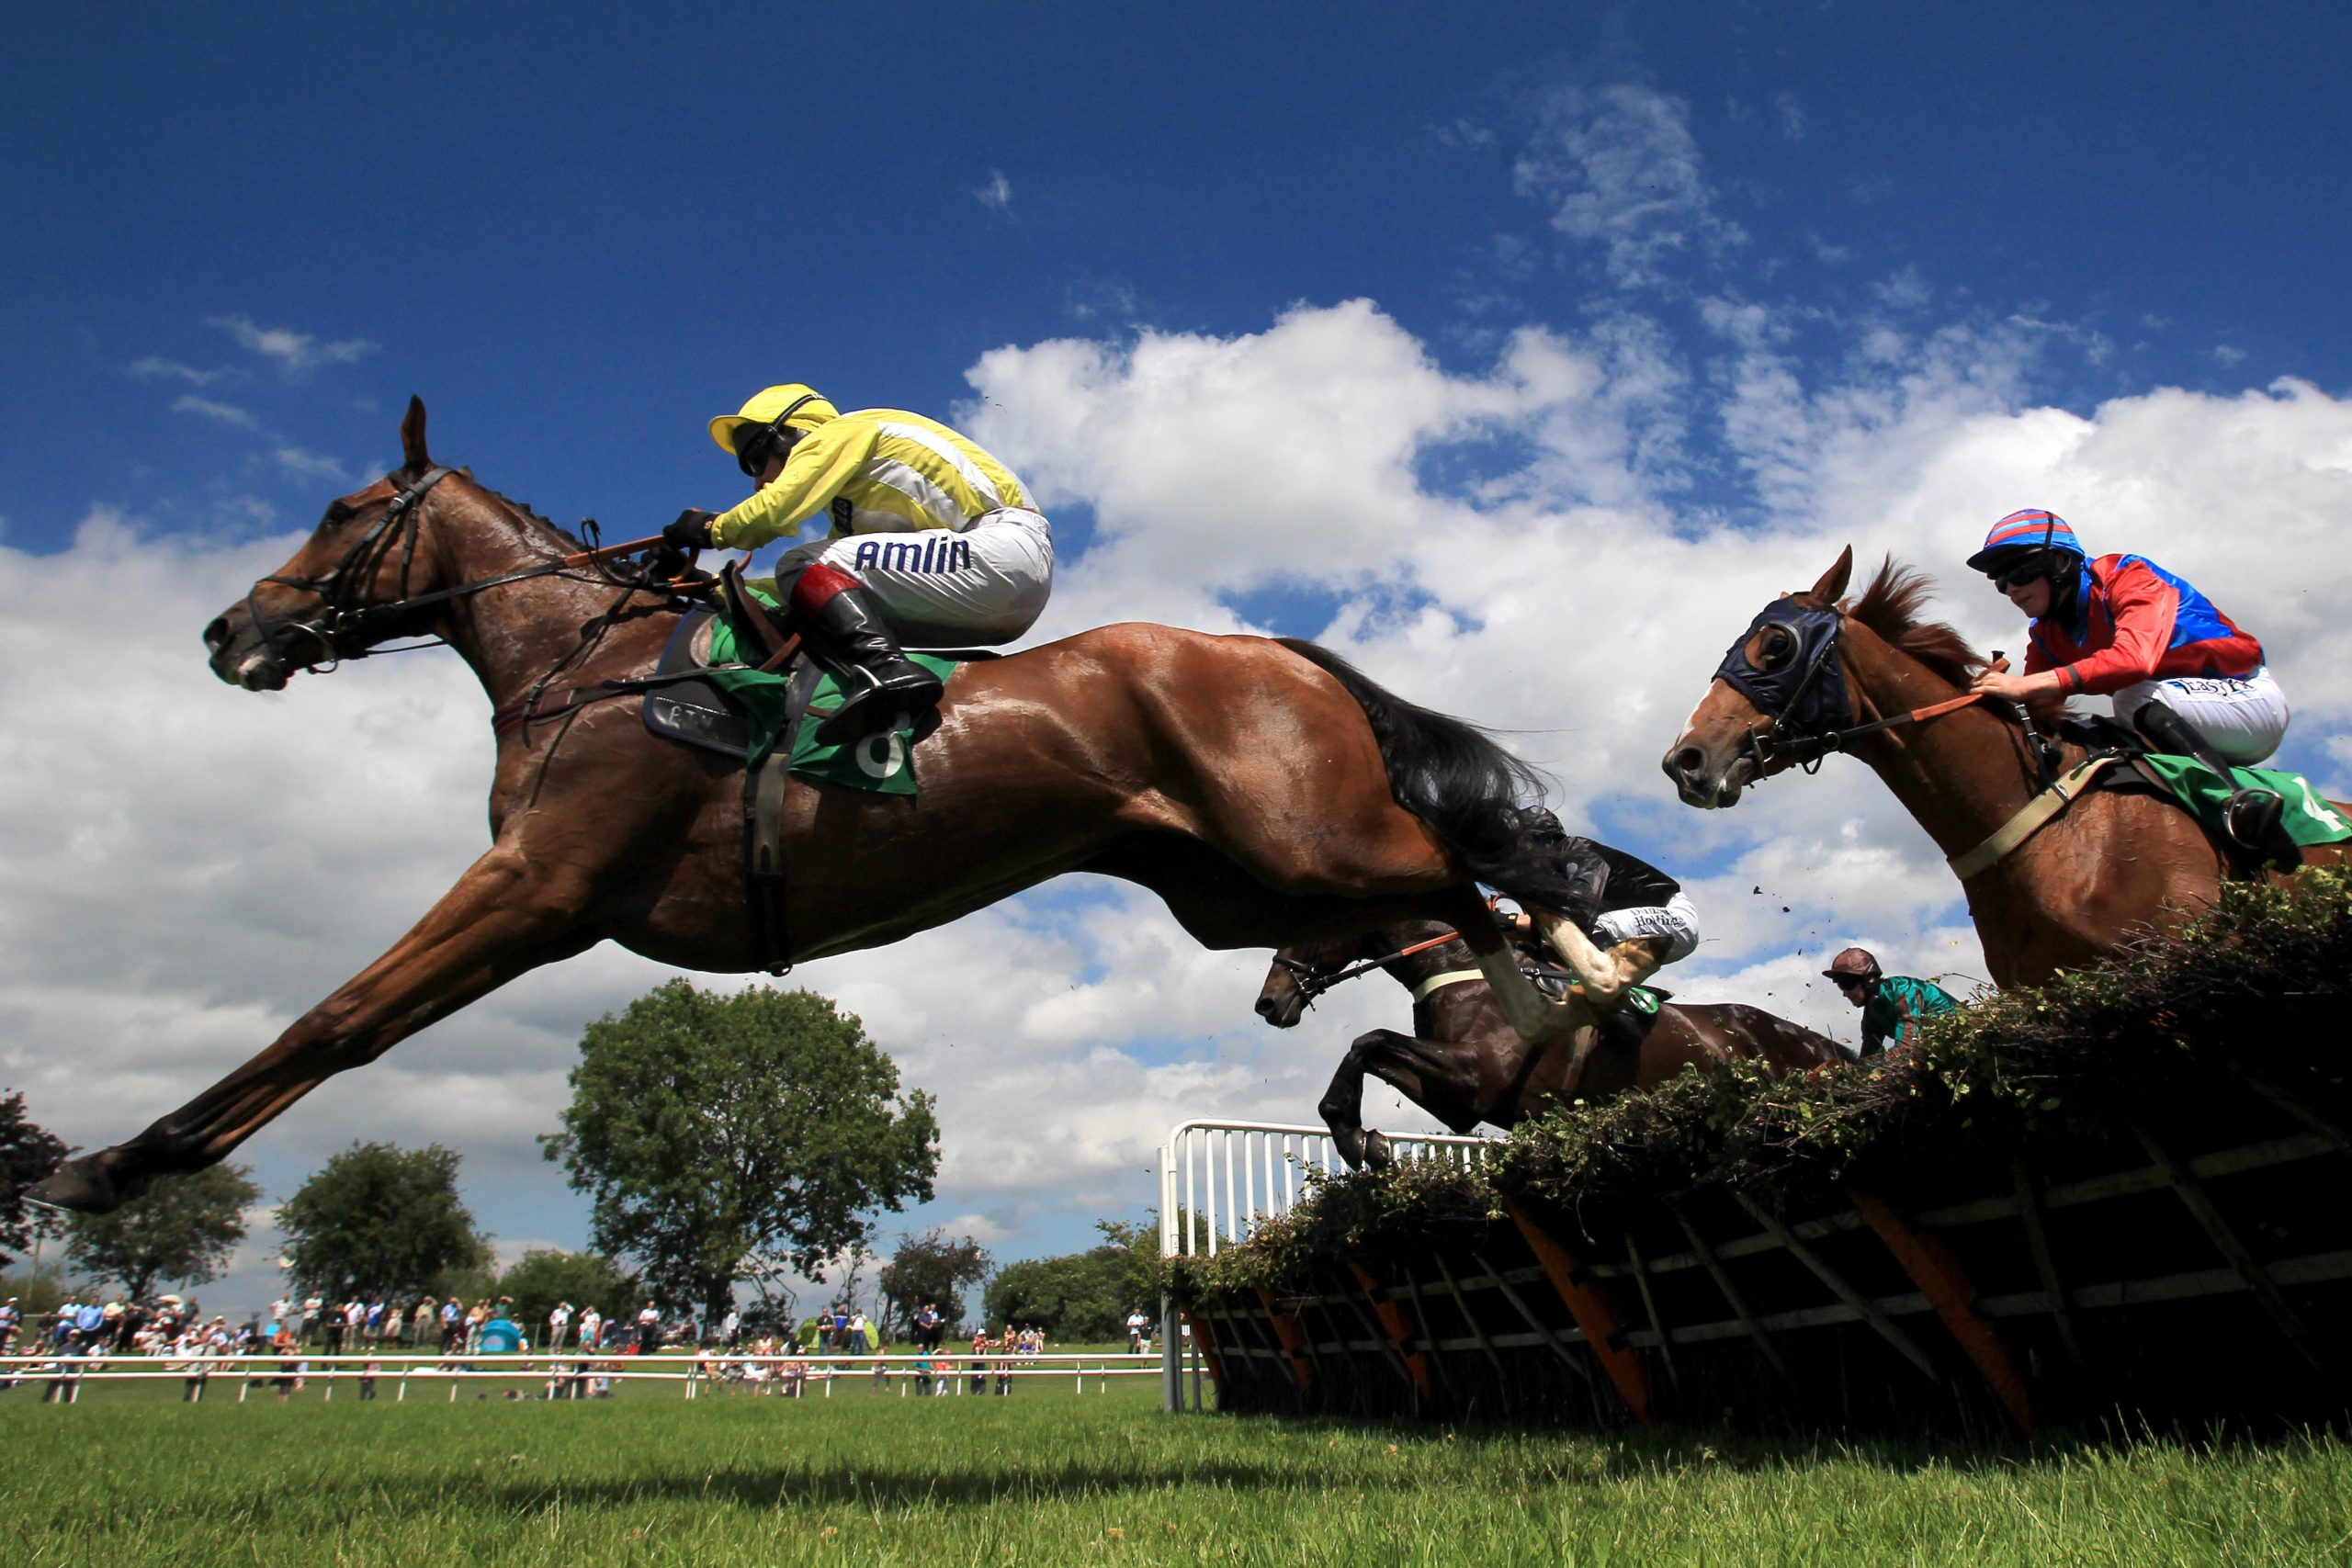 Race horses jump a hurdle at Uttoxeter Racecourse